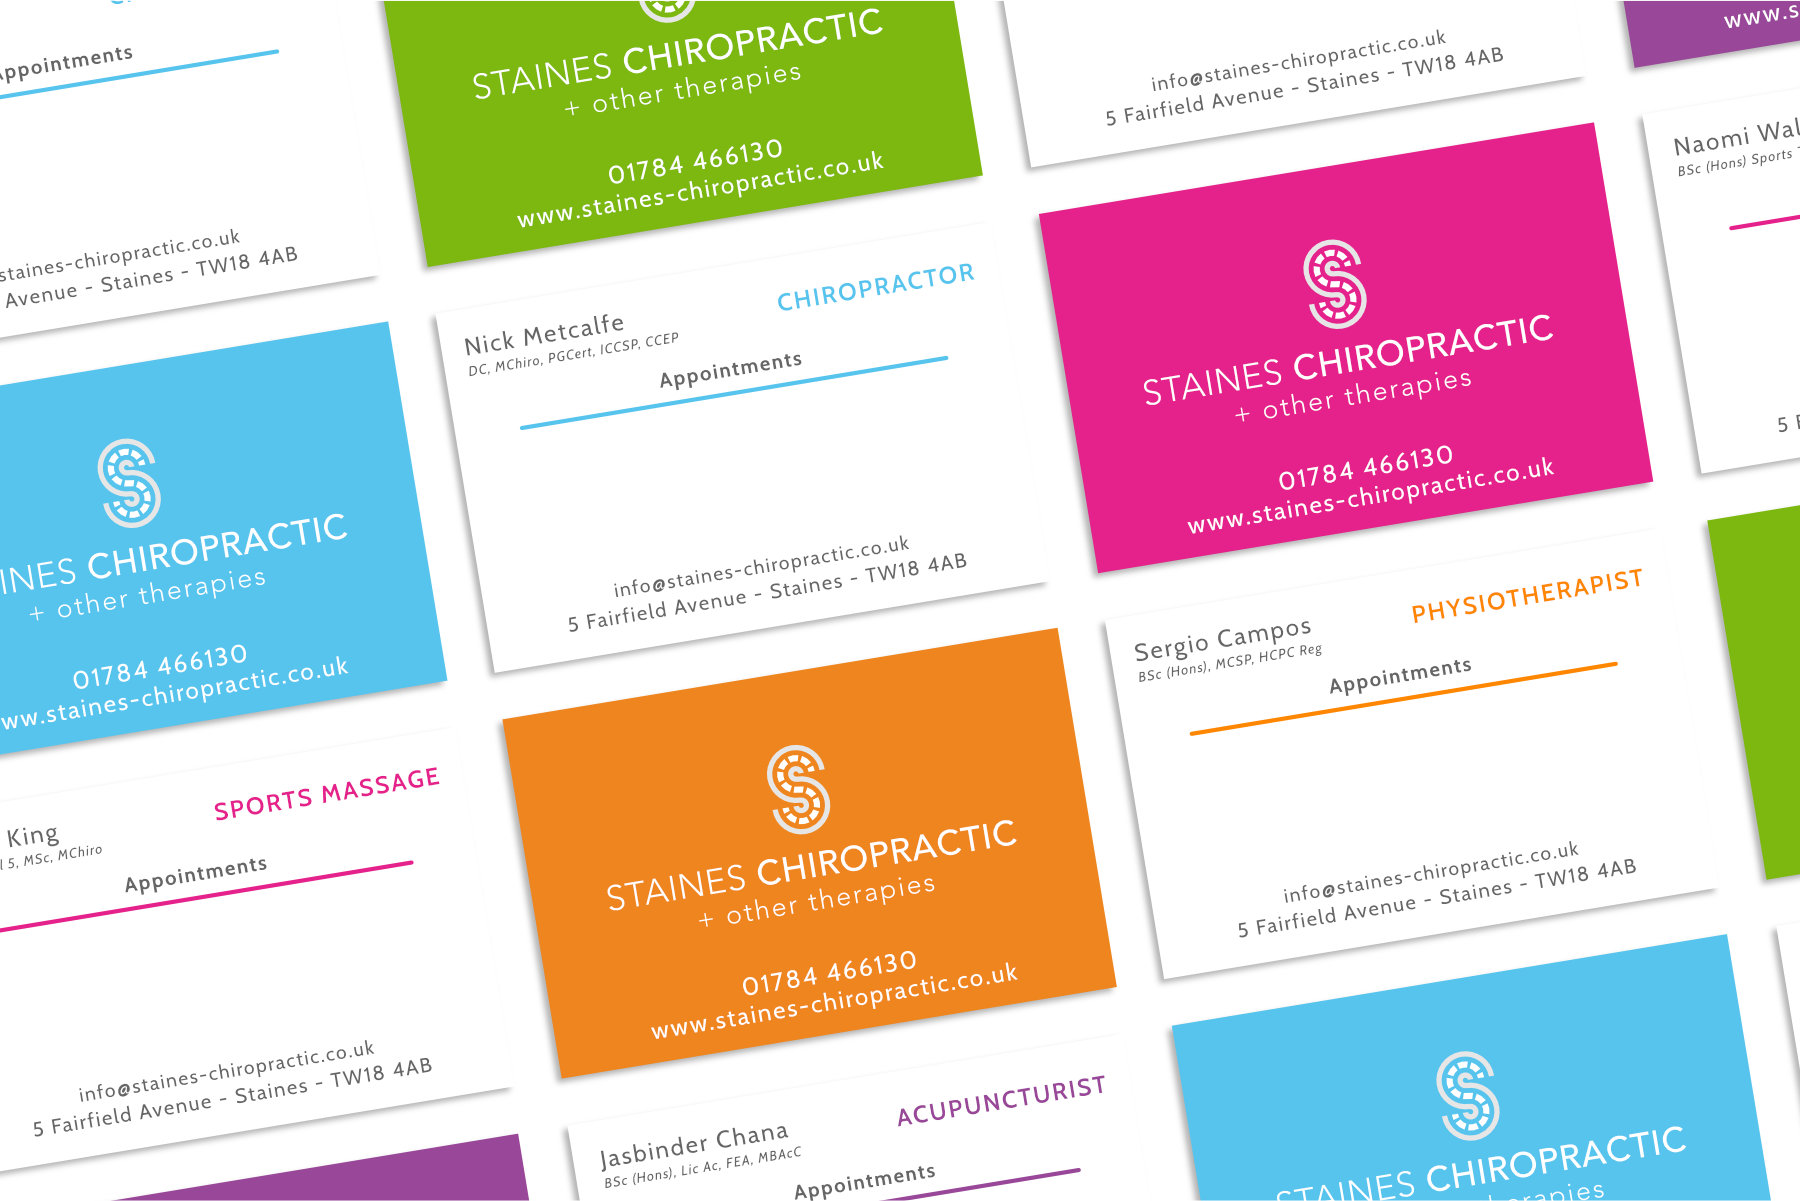 Chiropractic clinic business cards design